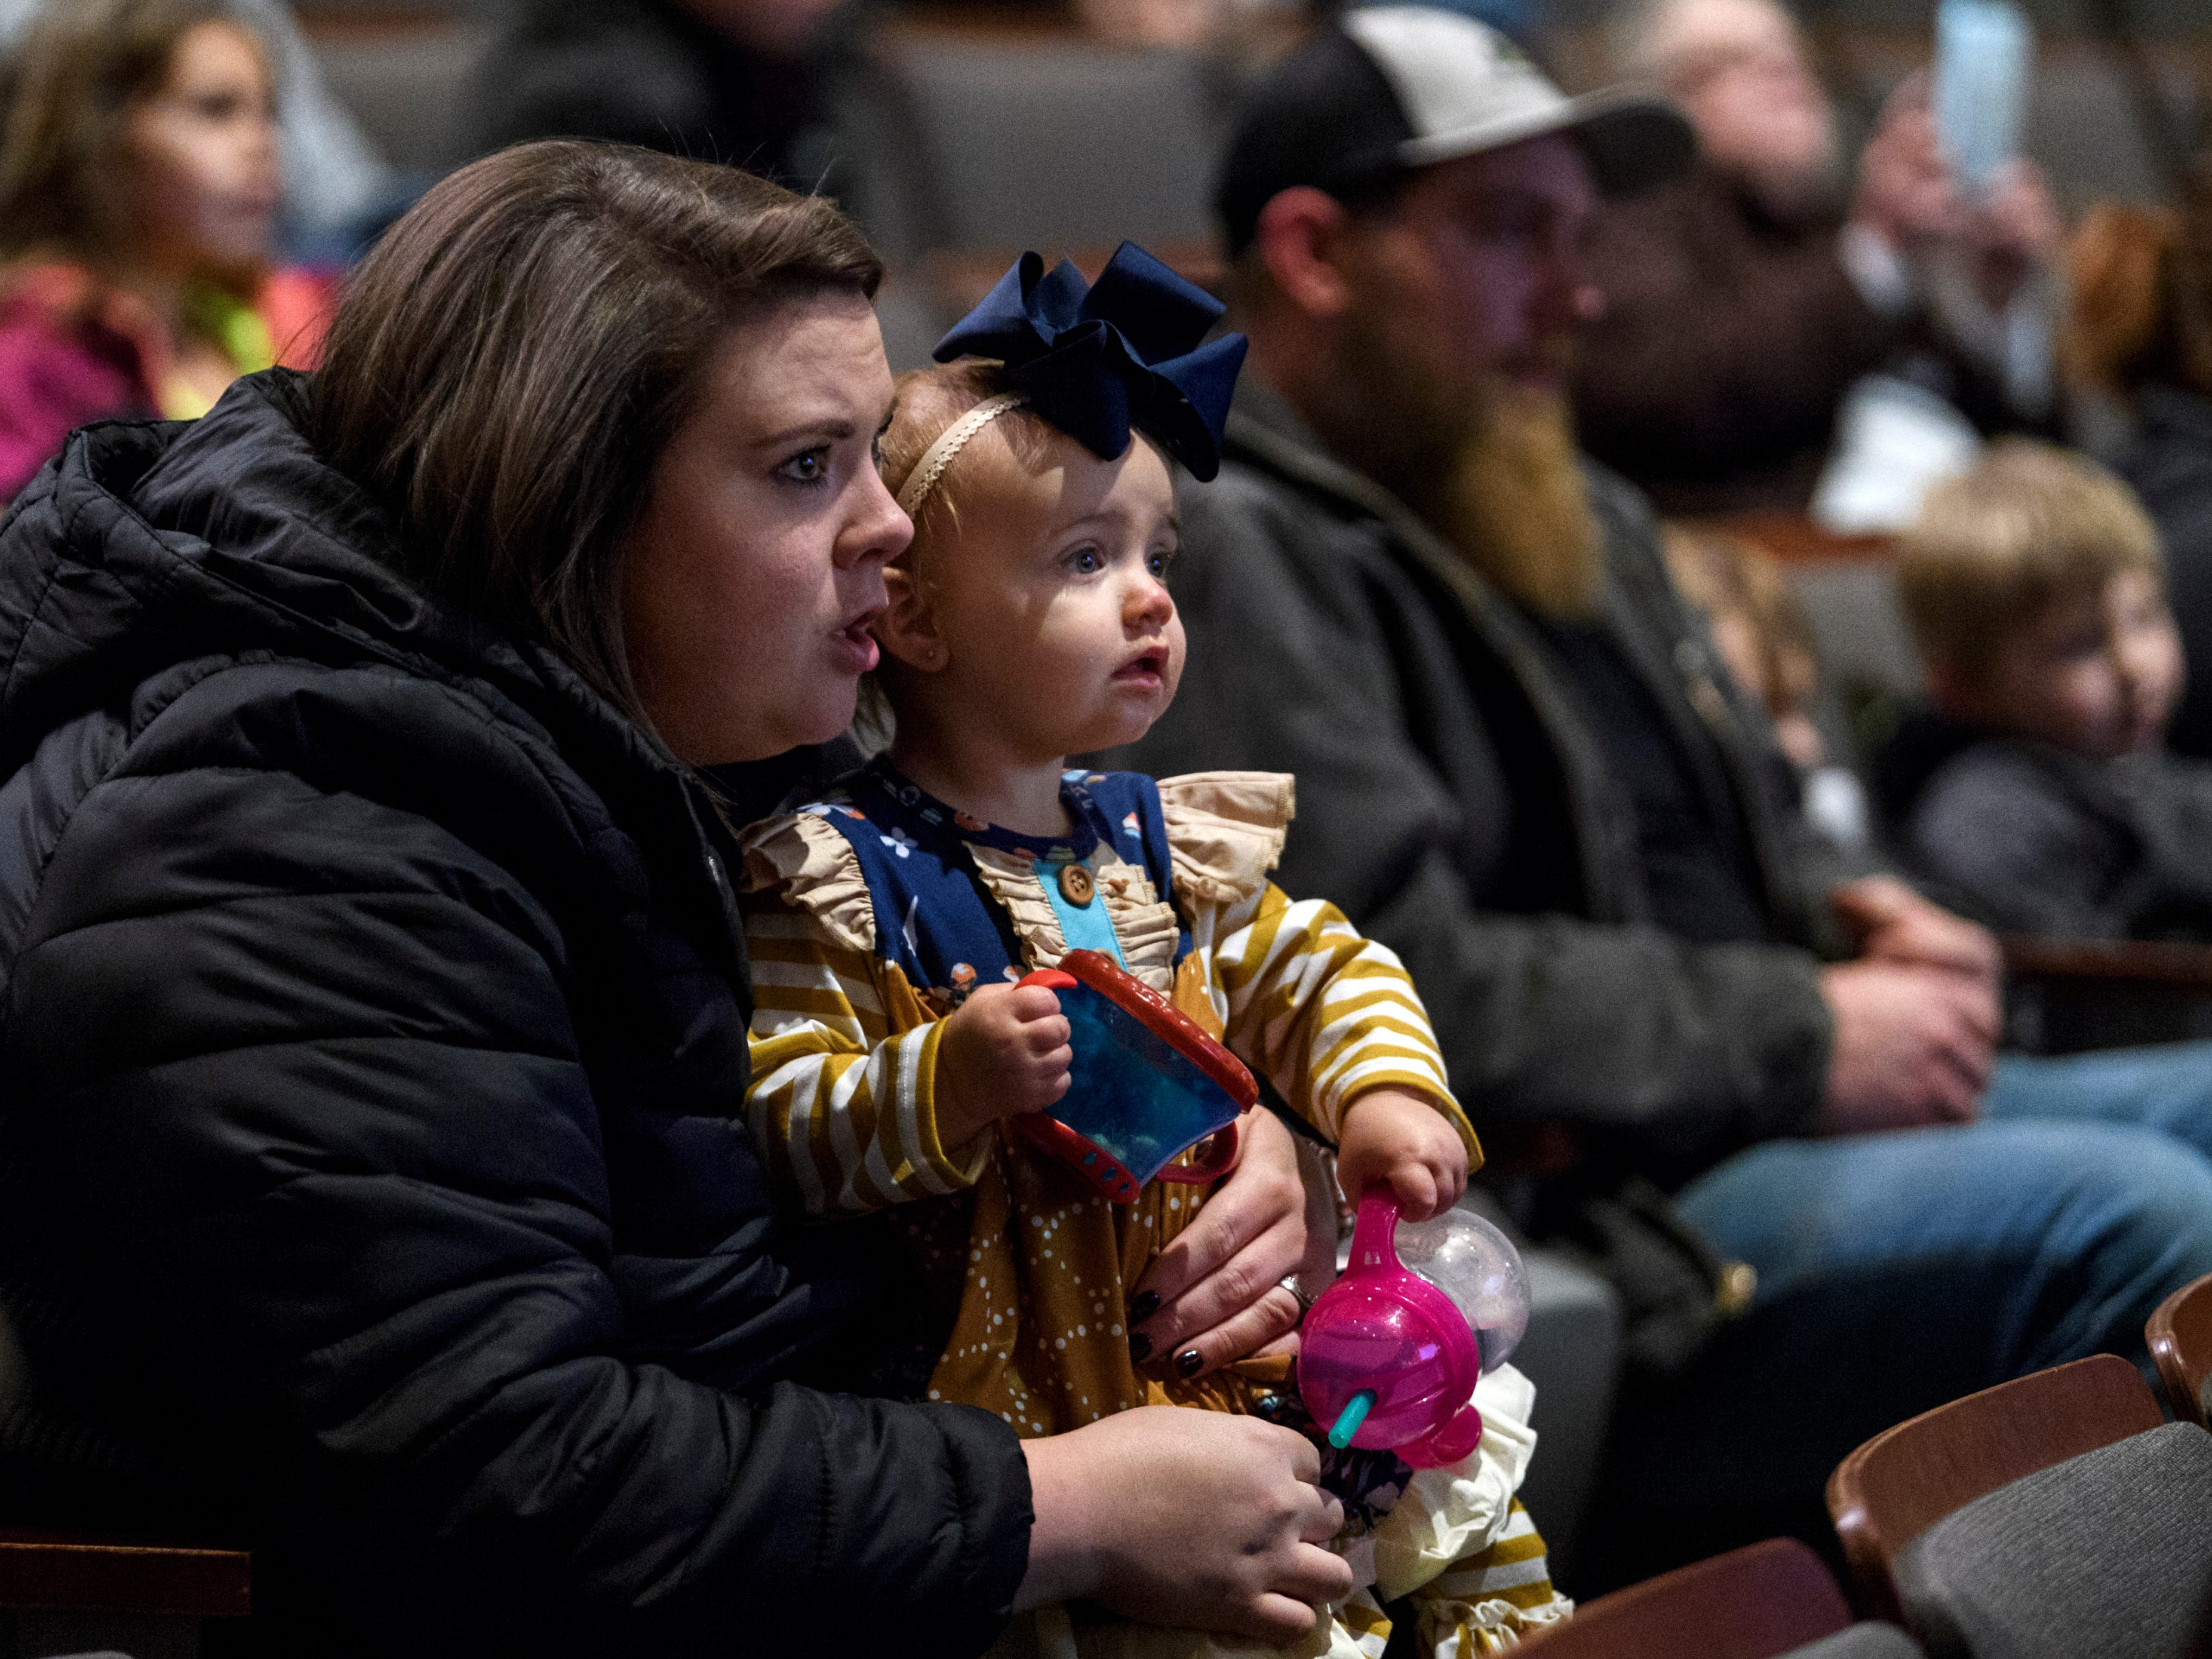 Brylee Cannon and her one-year-old daughter Brynlie Cannon watch a presentation about owls during a Family Night for Cairo and Jefferson elementary school students and their families at Henderson Community College's Preston Arts Center in Henderson, Ky., Thursday, Jan. 24, 2019. The event centered around a new National Geographic Photo Ark exhibit by photographer Joel Sartore, which will be on display for the public until March 15